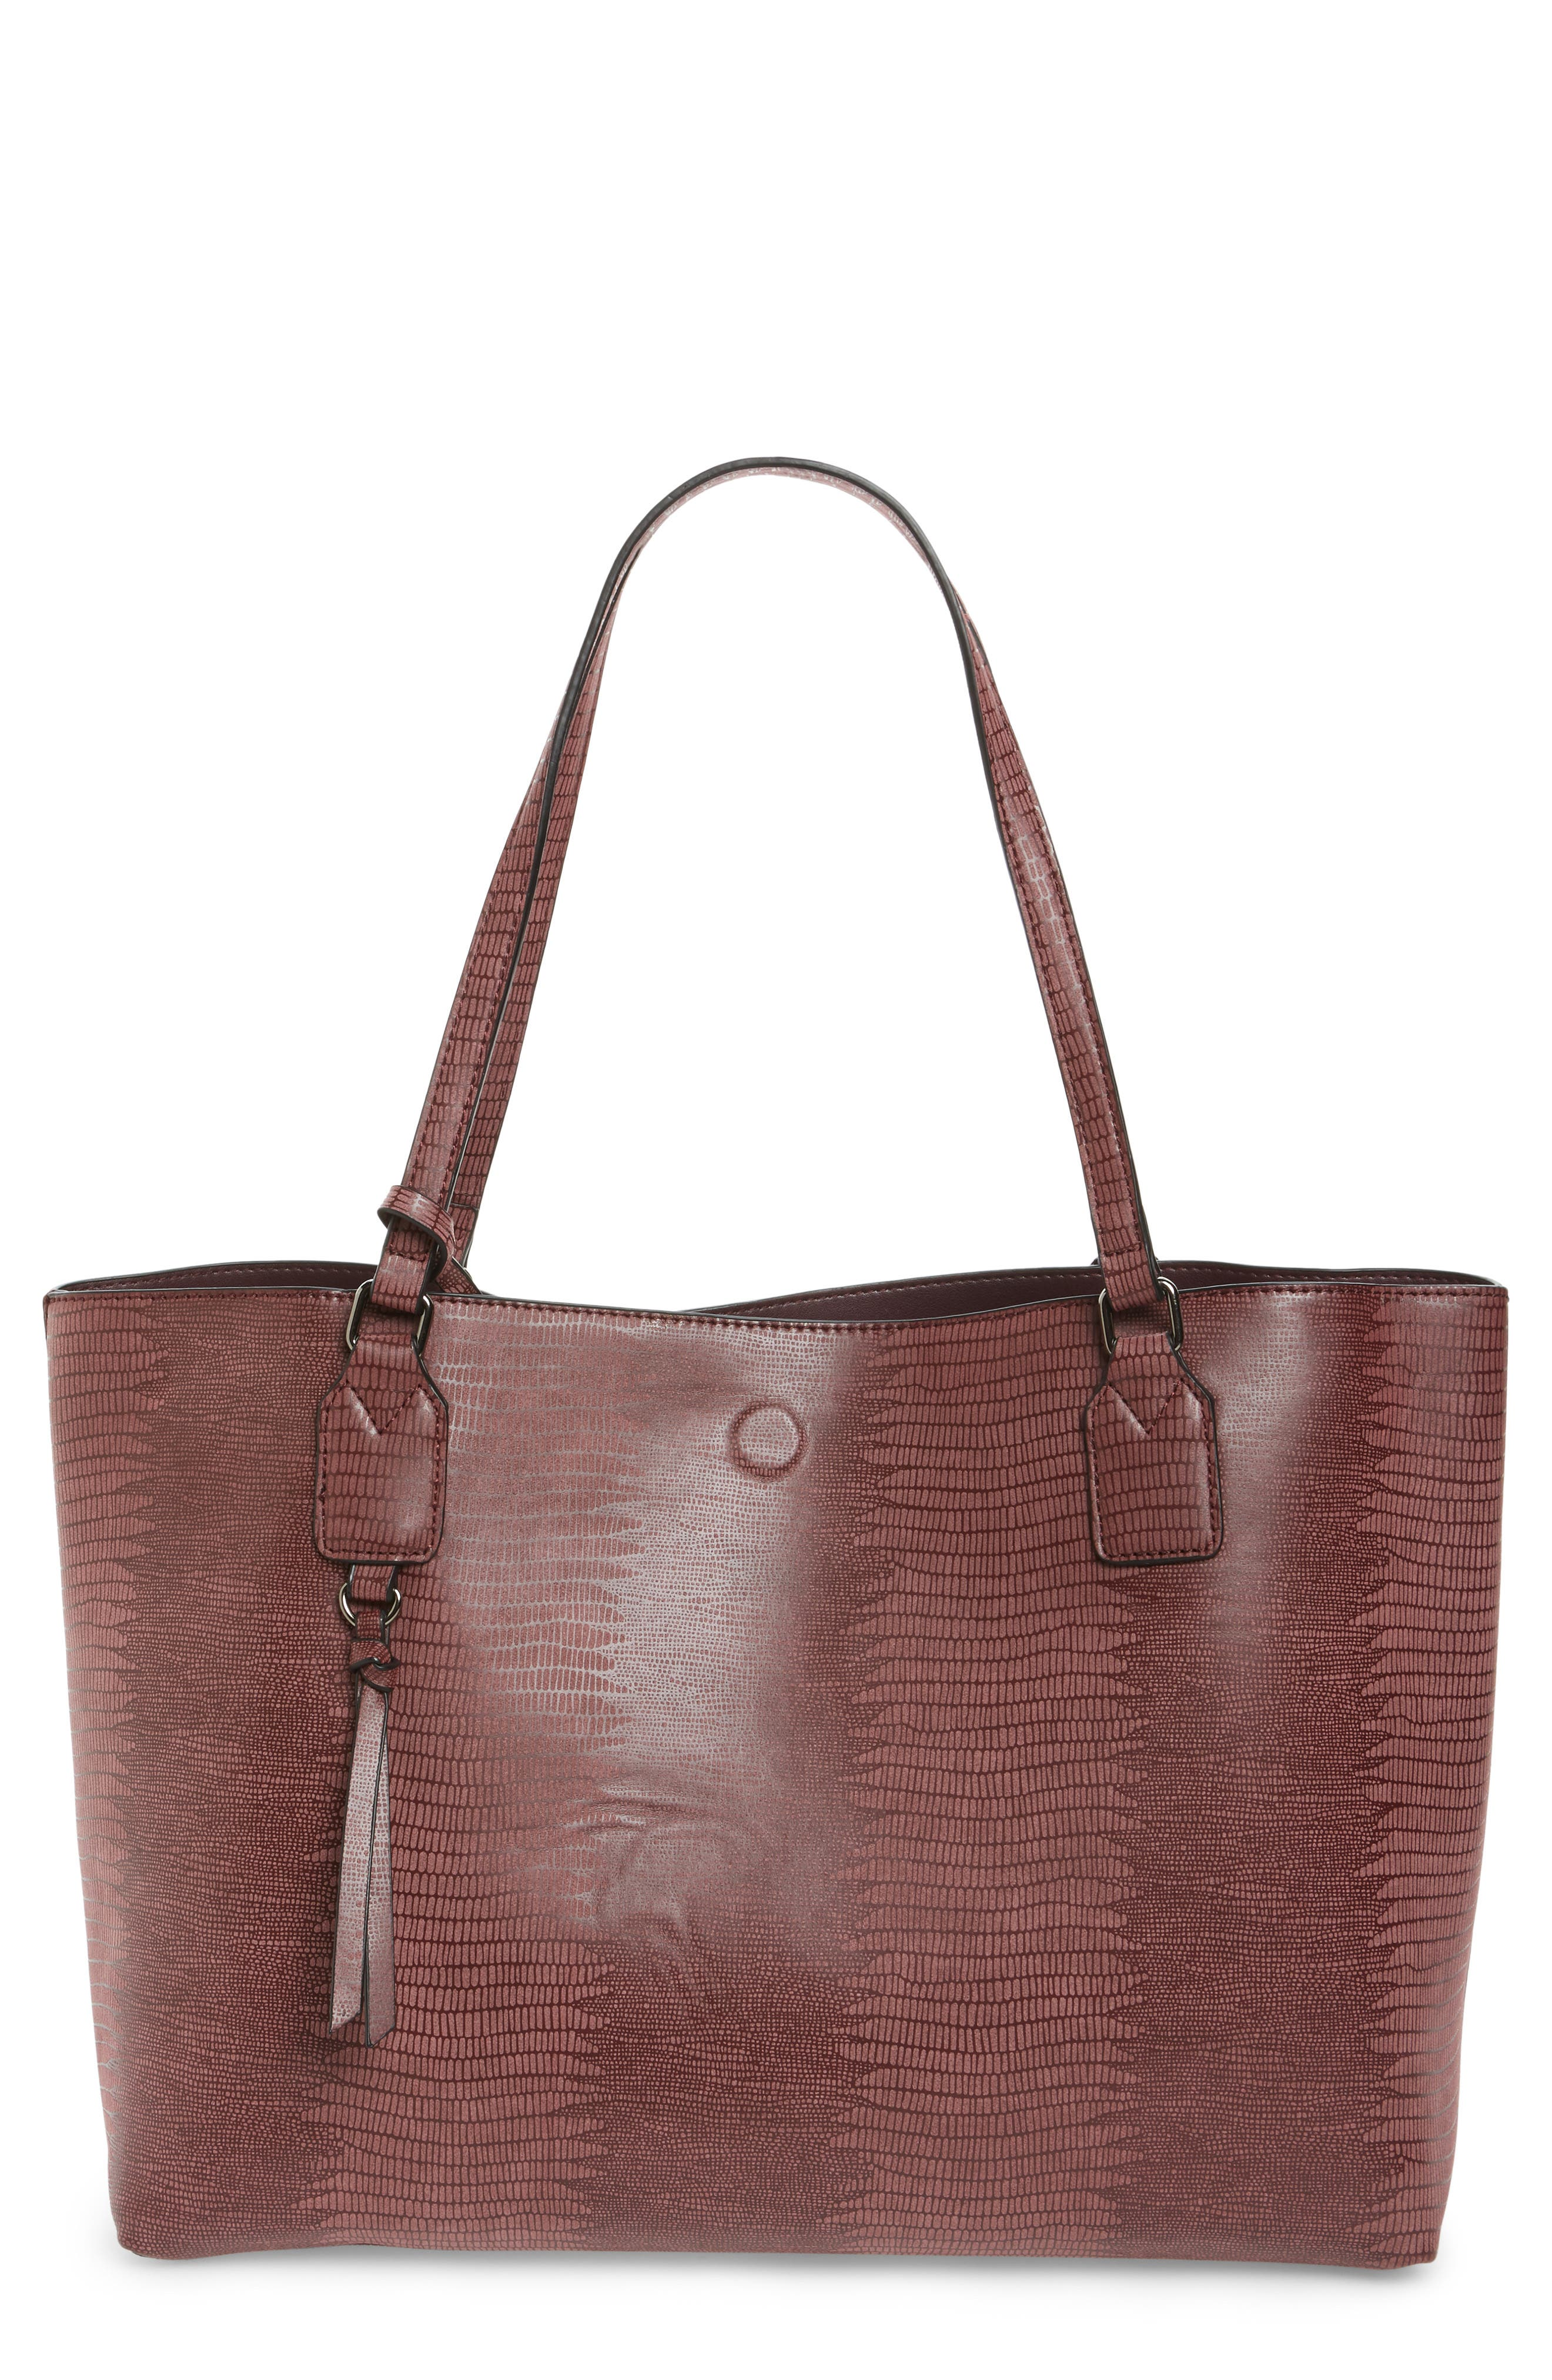 Alternate Image 1 Selected - Street Level Snake Embossed Faux Leather Tote